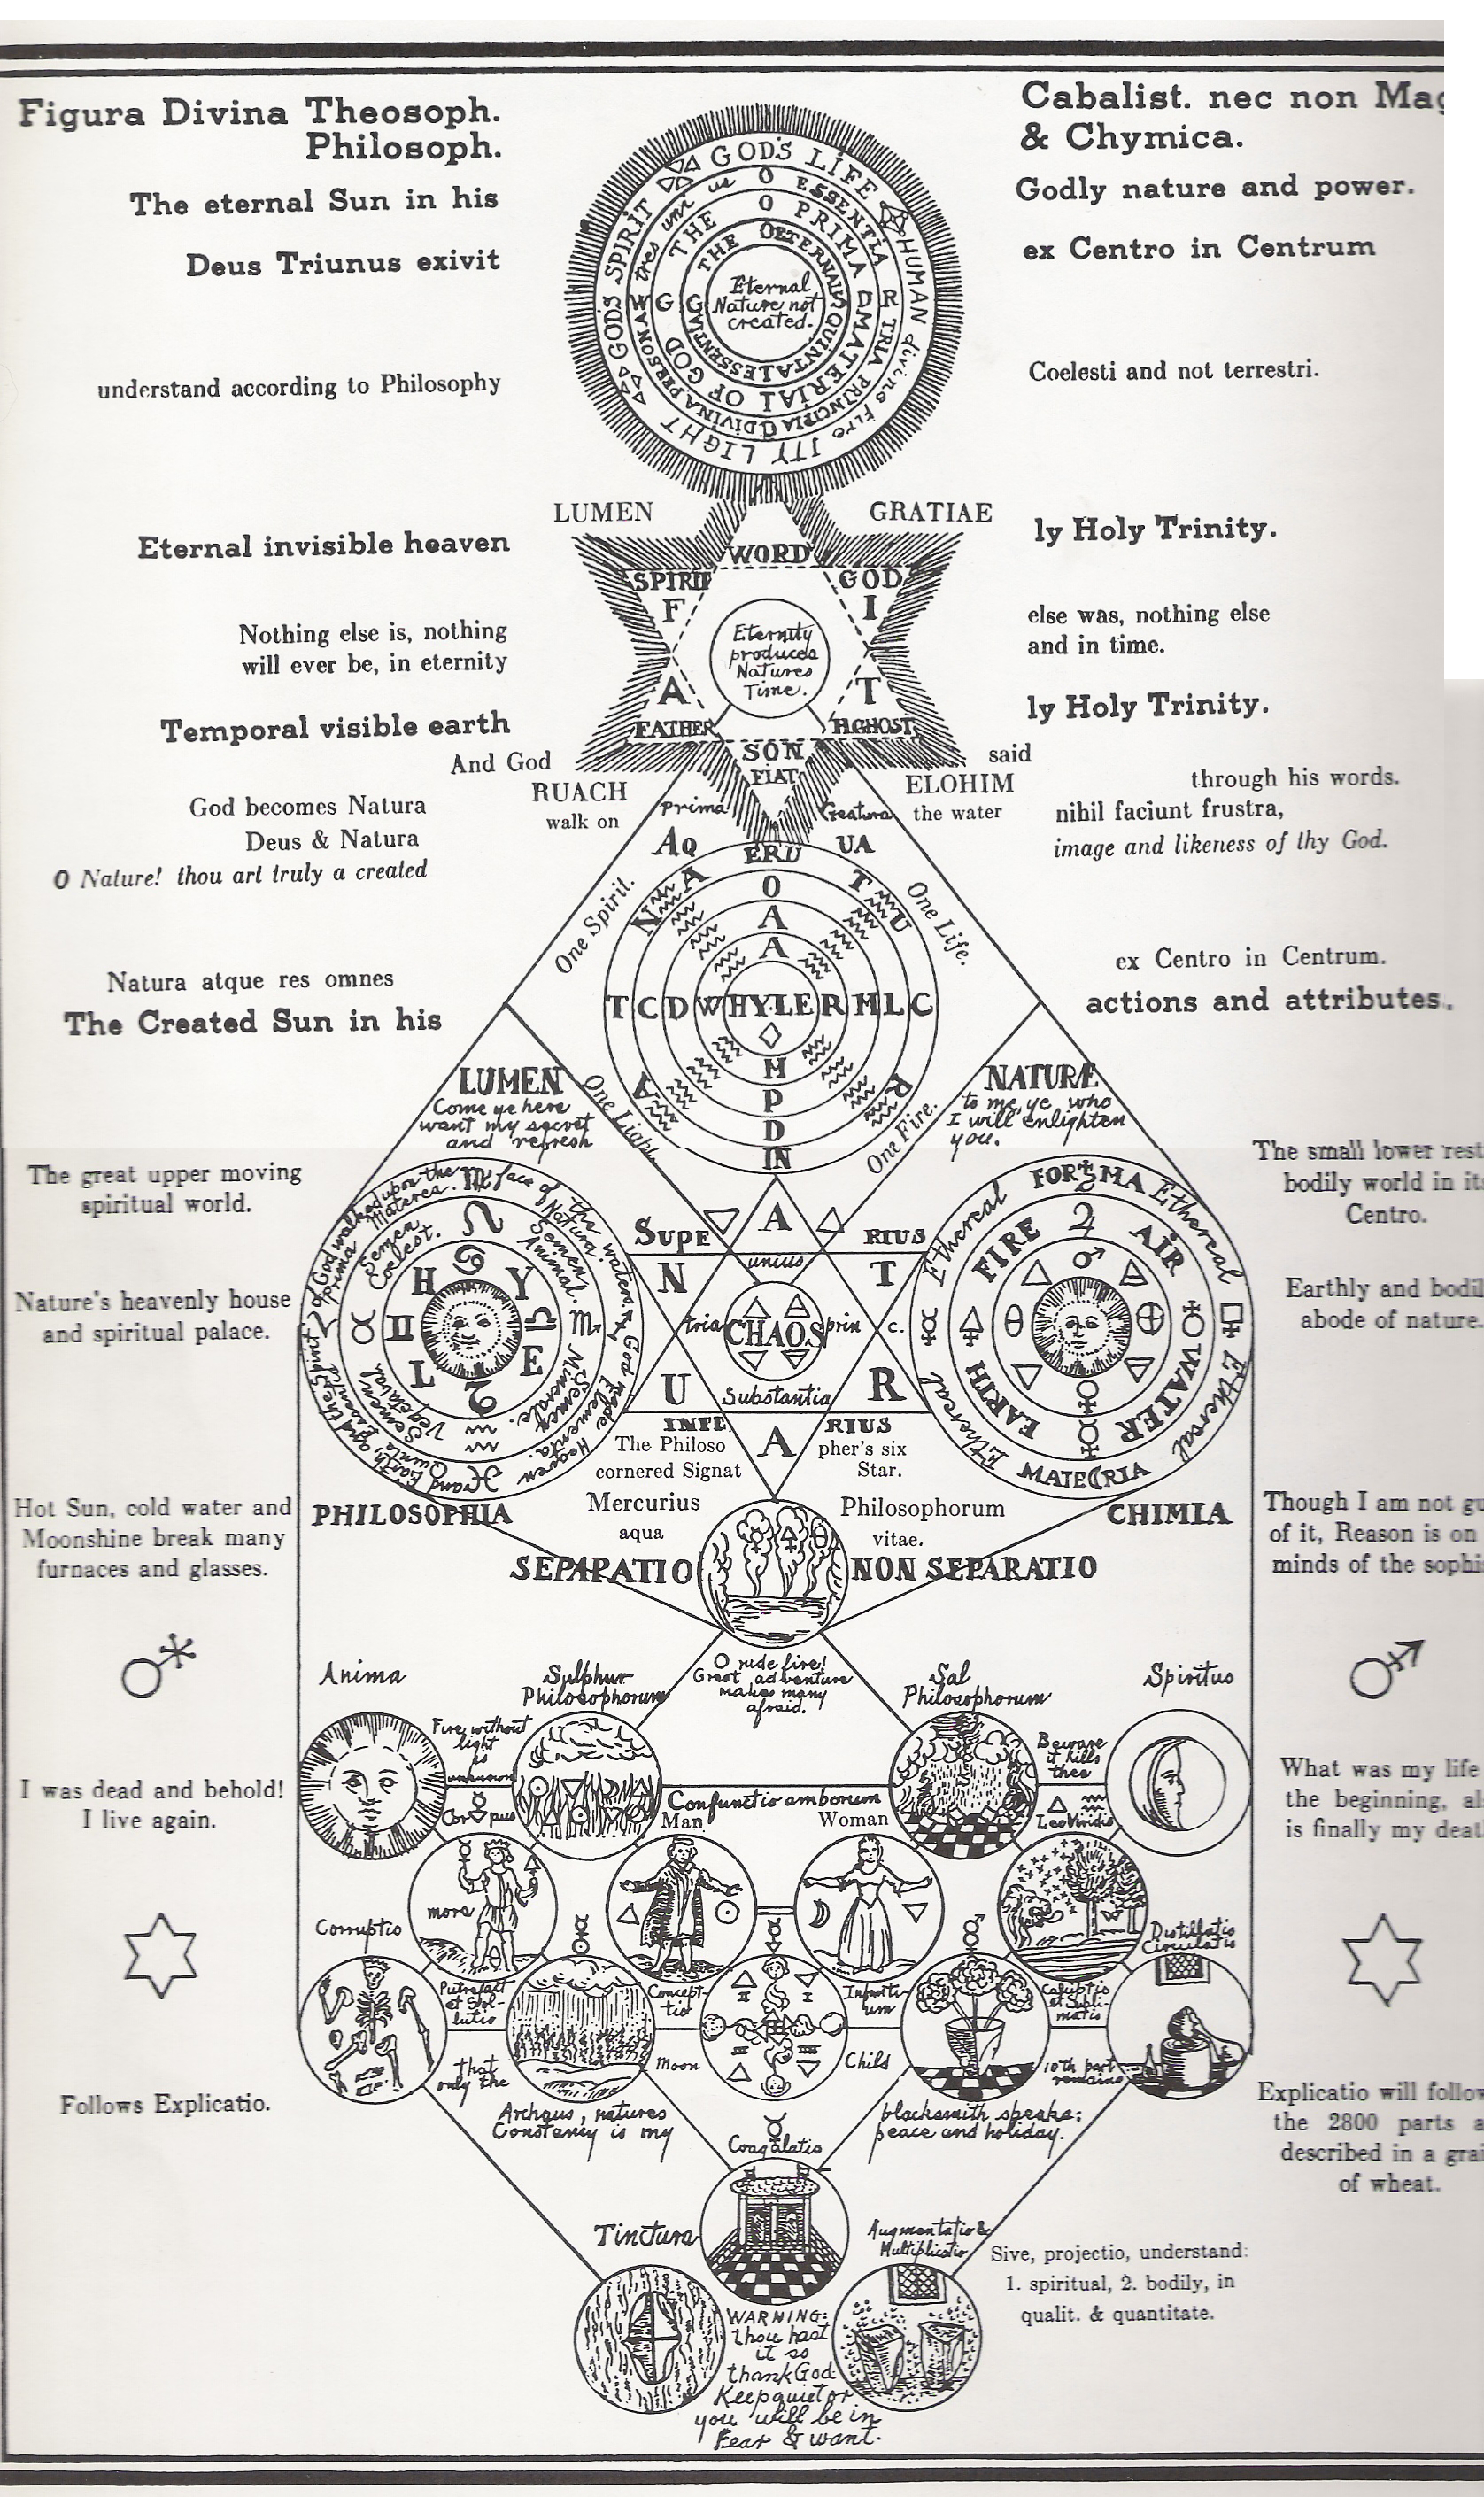 Secret Symbols Of The Rosicrucians Of The 16th And 17th Centuries